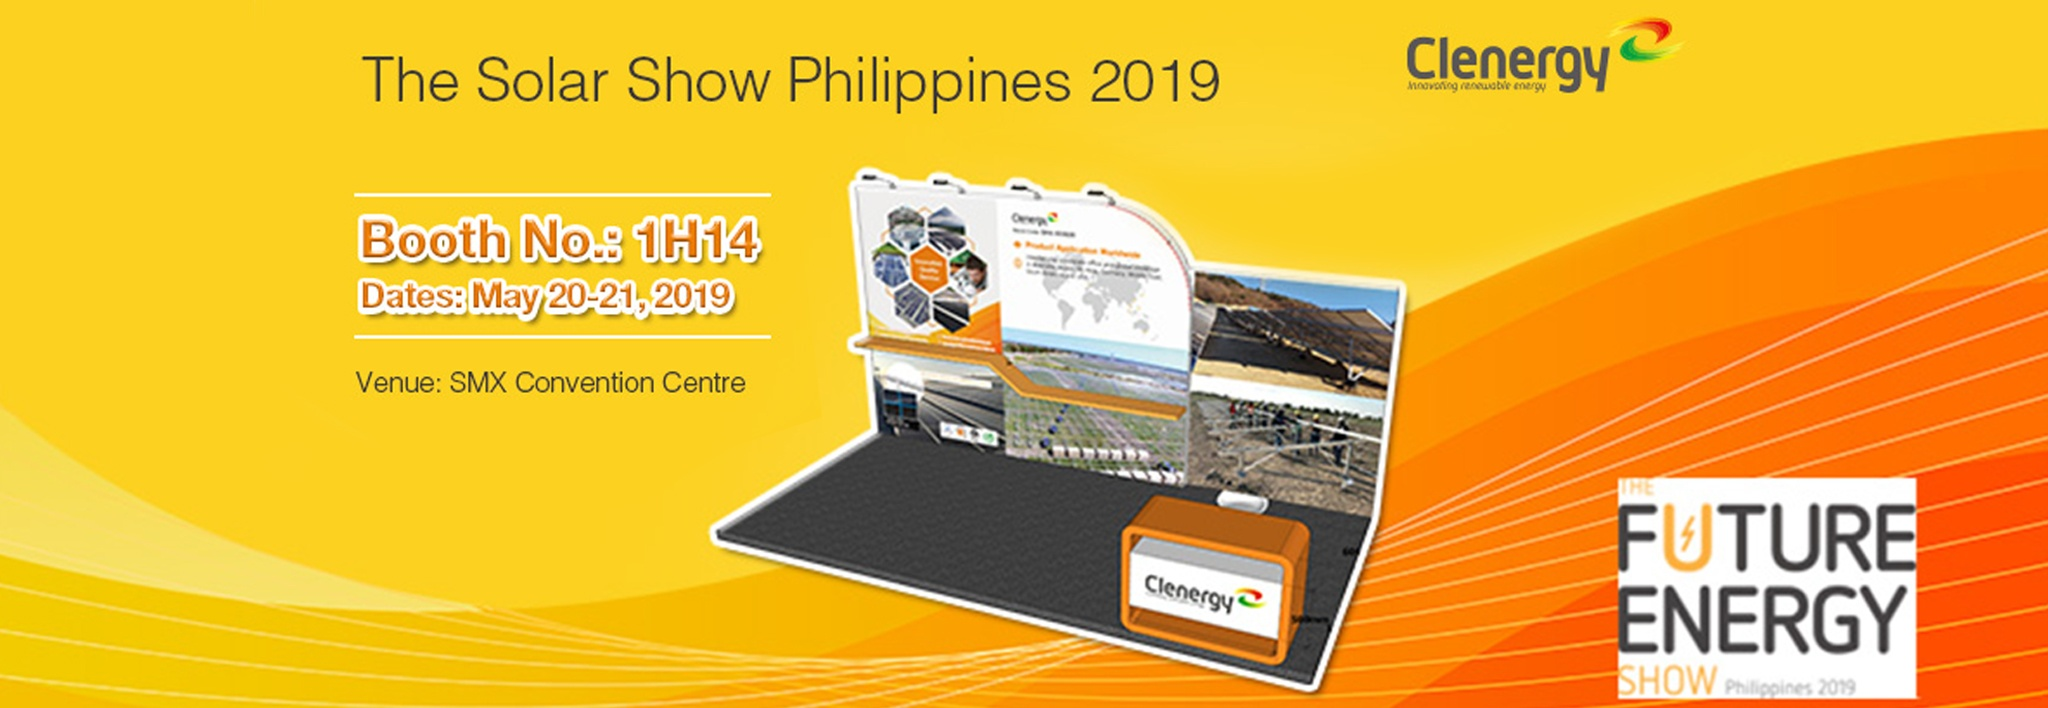 Clenergy at the Solar Show Philippines 2019 Invitation Letter